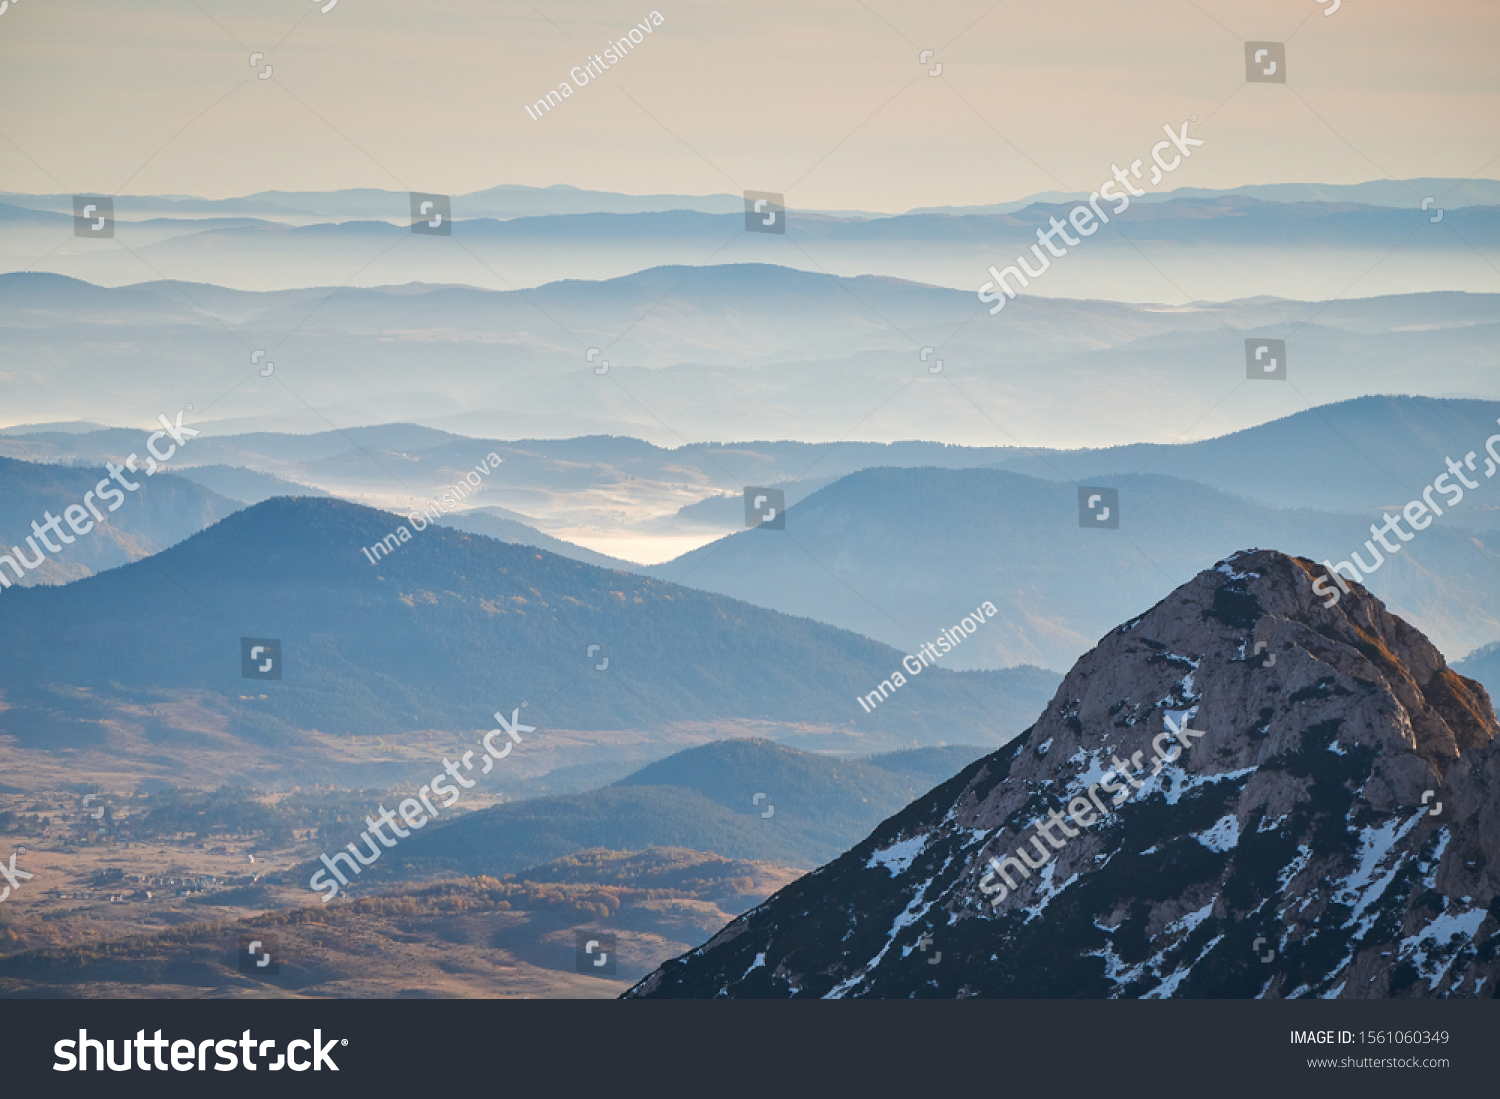 stock-photo-durmitor-landscape-from-bobo